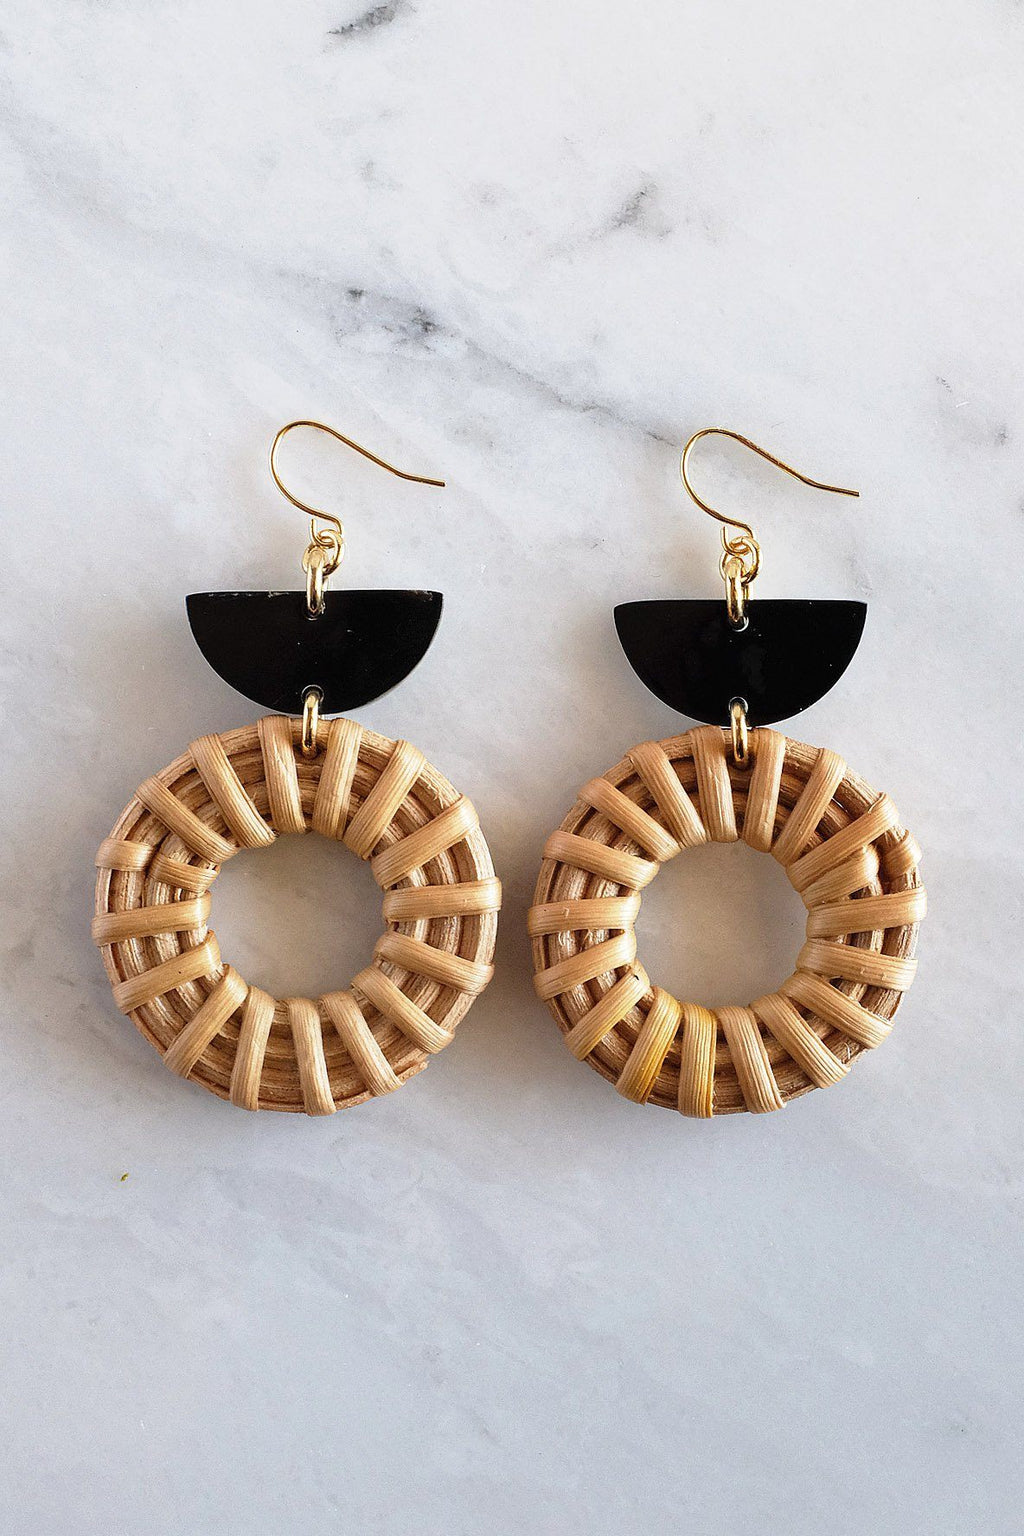 Ninh Binh 16K Gold Plated Brass Honey Horn & Rattan (Straw/Wicker) Crescent & Donut Earrings